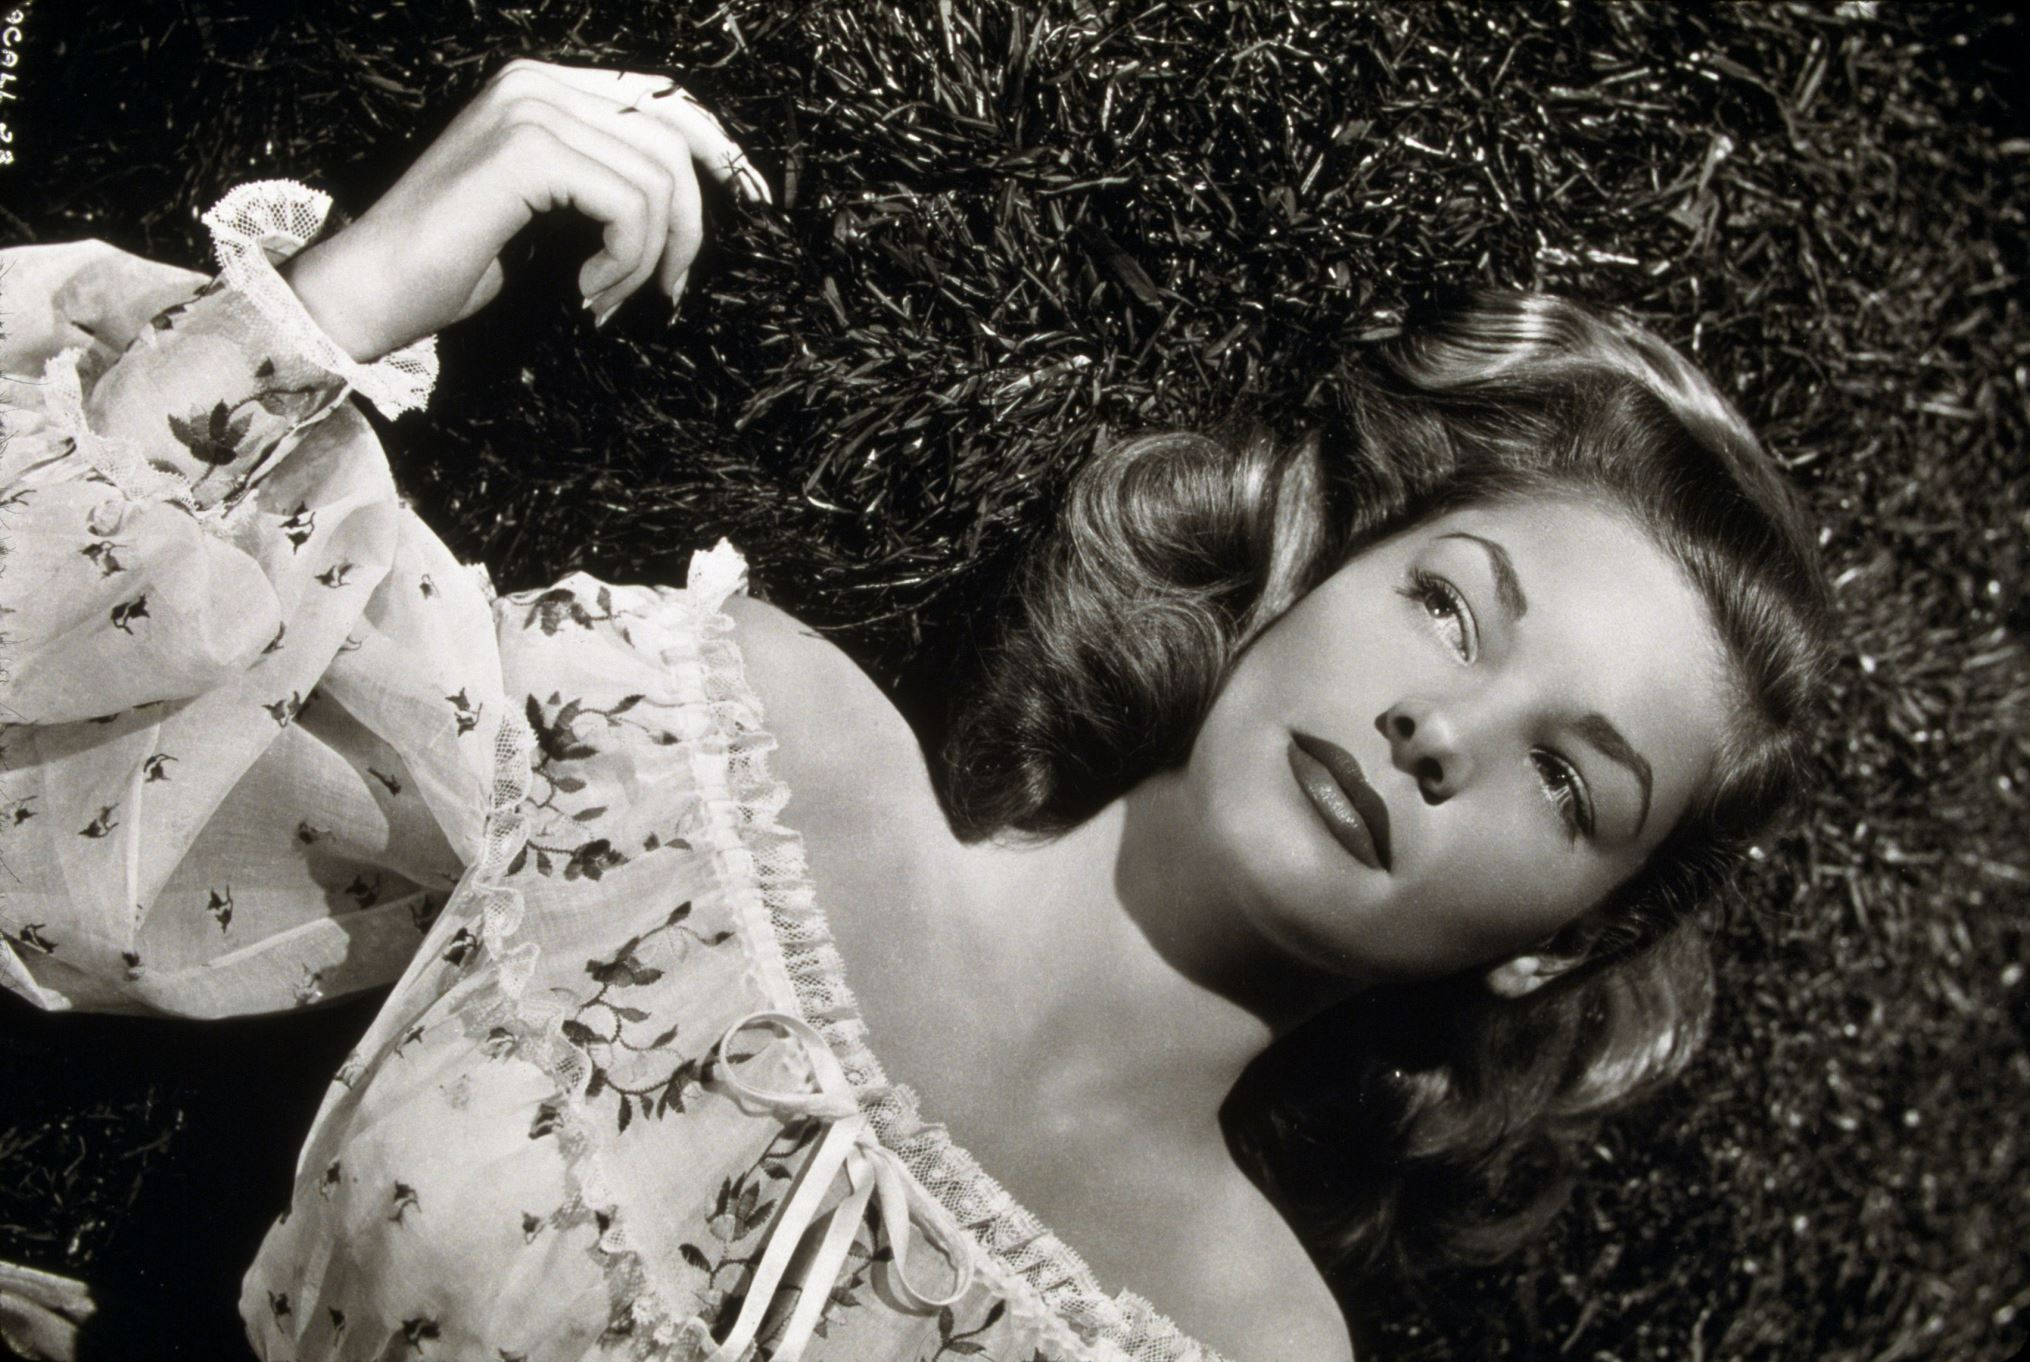 Known for her great voice and sultry looks, the actress died a month before her 90th birthday after suffering from a stroke.